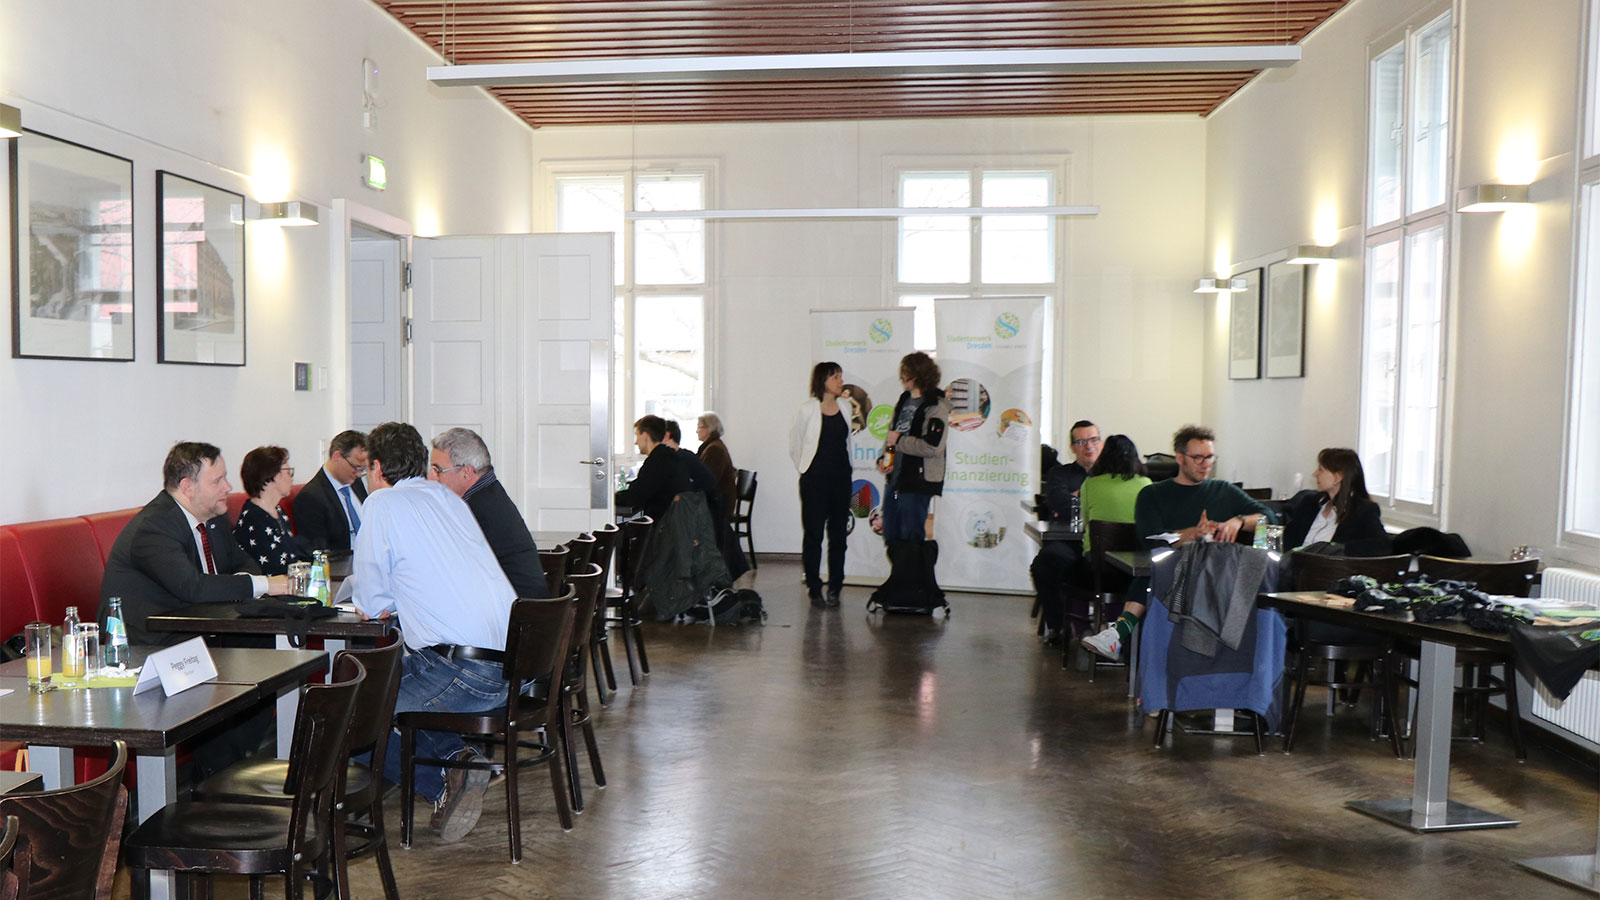 Foto vom Speed-Dating in der Alten Mensa